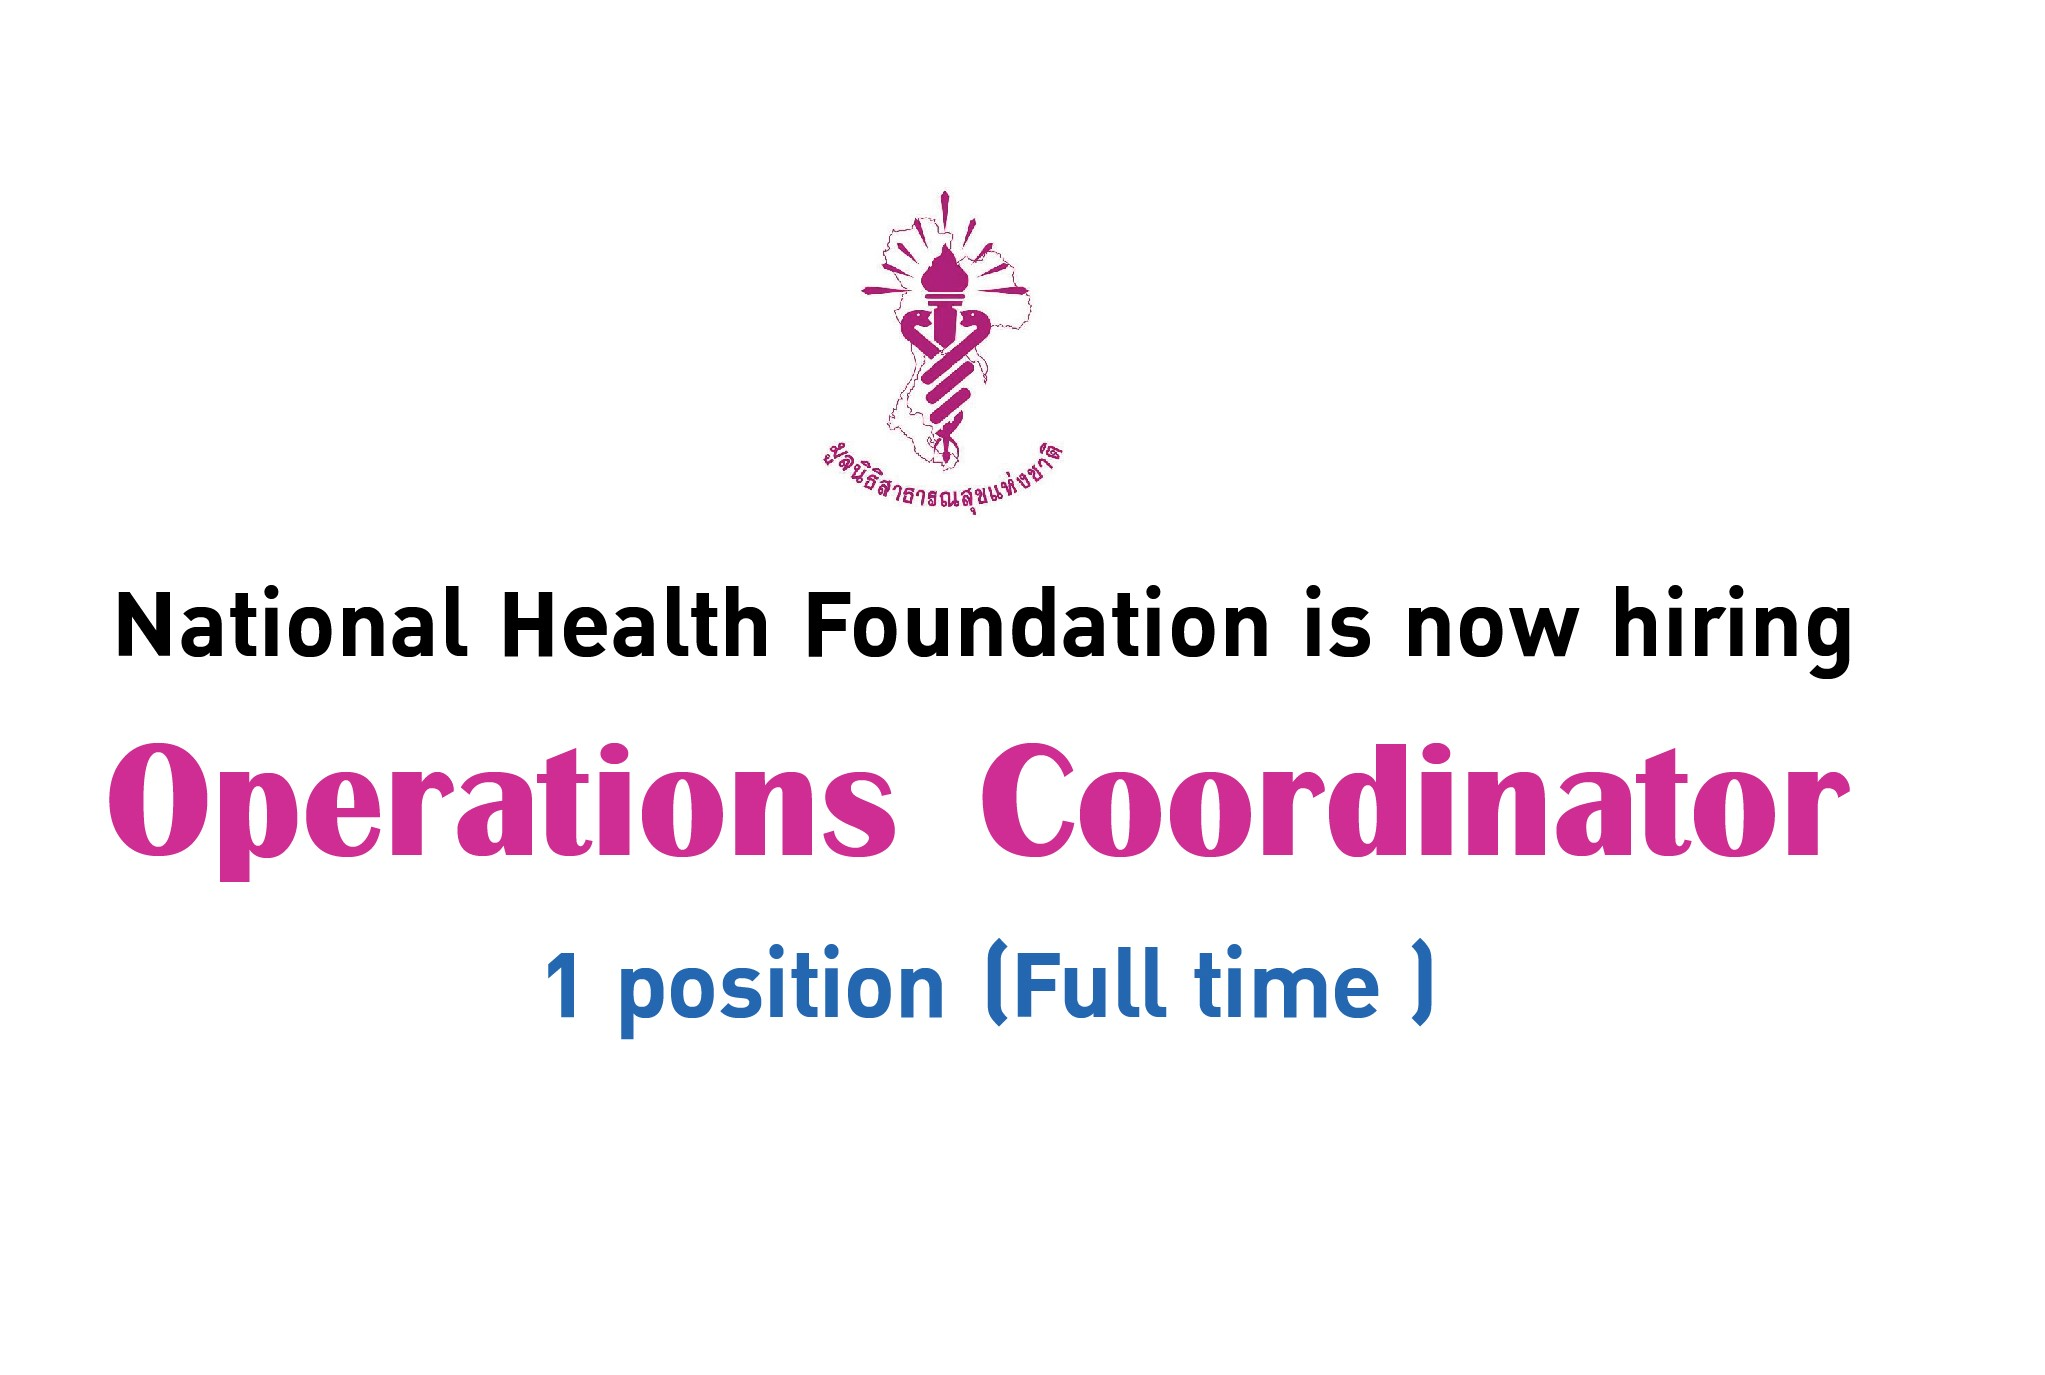 National Health Foundation is recruiting an Operations Coordinator